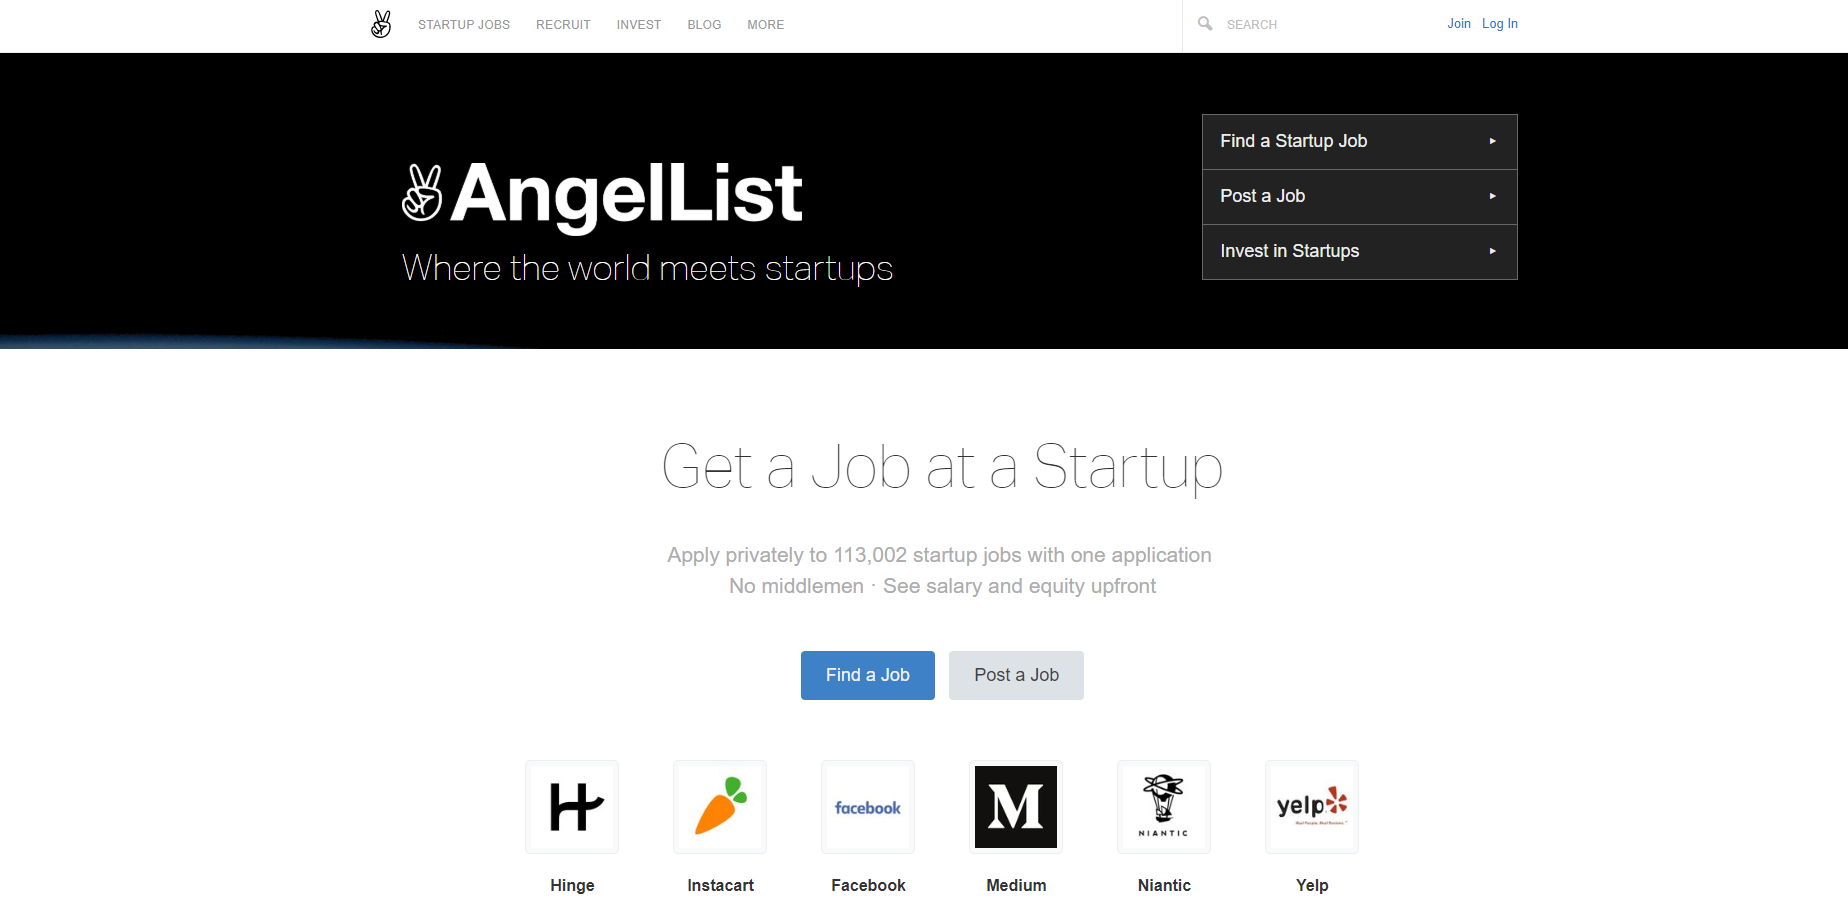 AngelList job posting